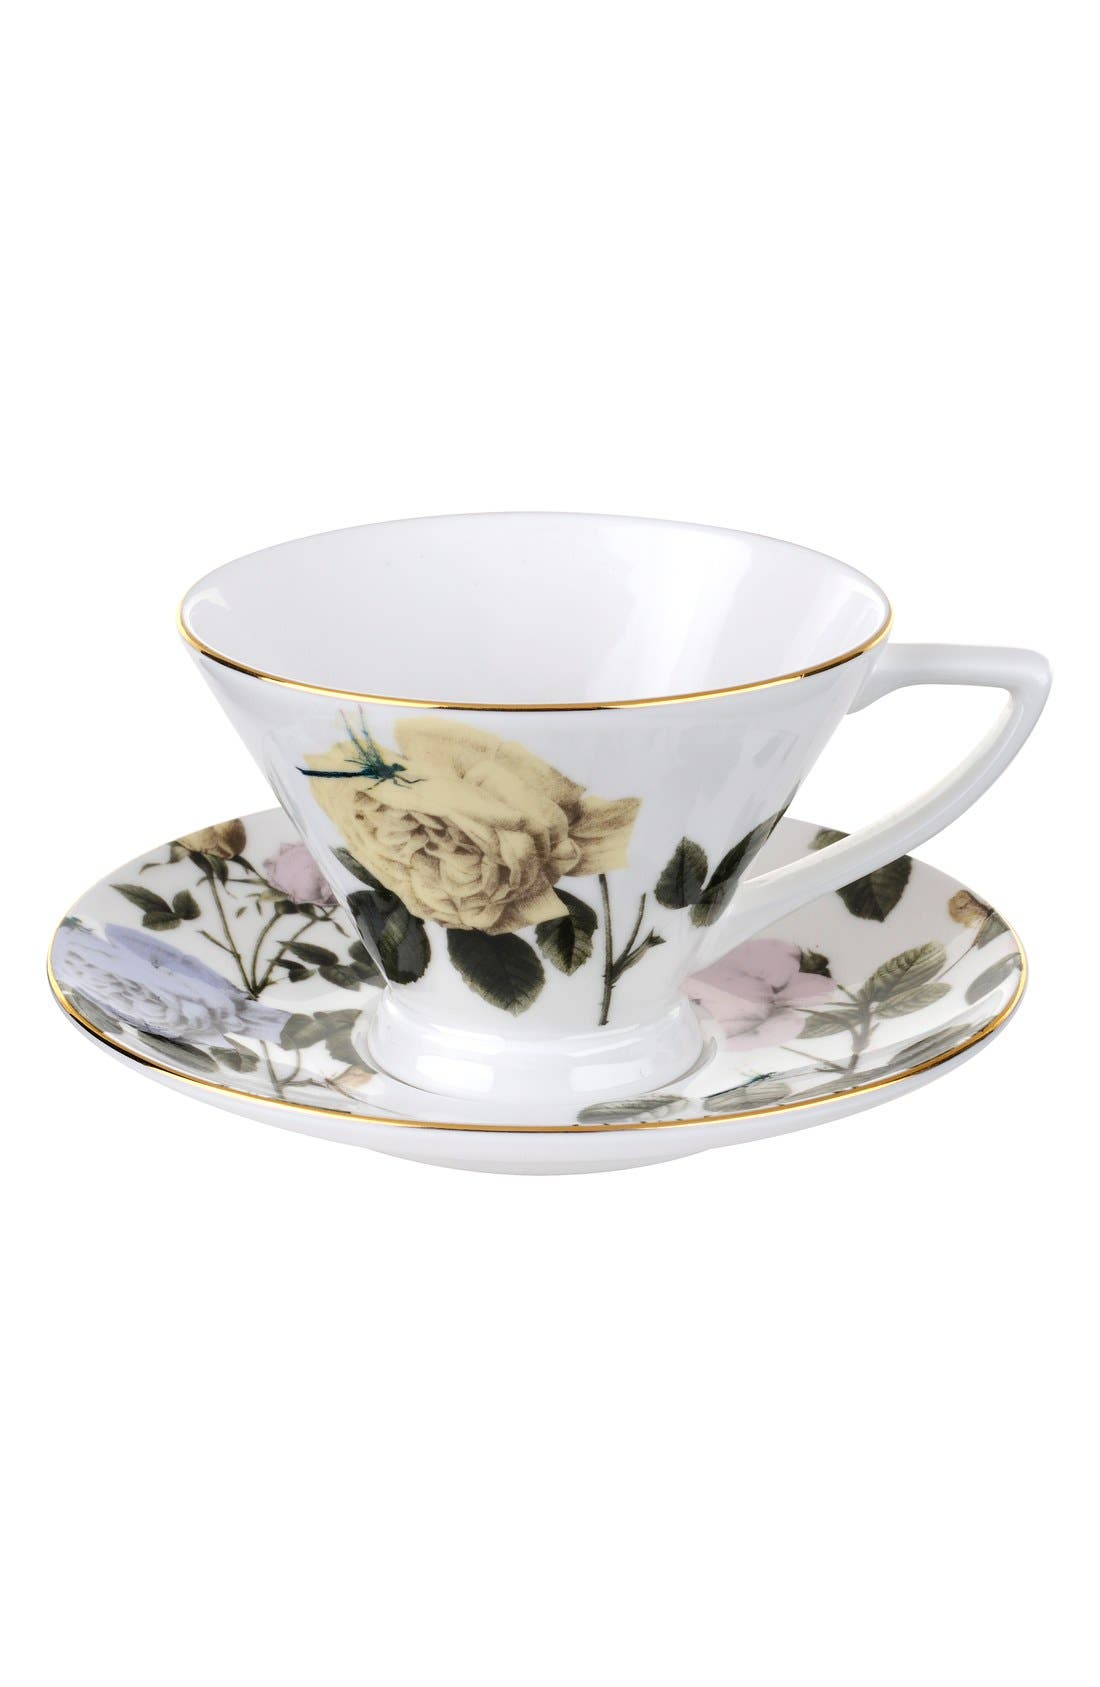 Alternate Image 1 Selected - Portmeirion x Ted Baker 'Rosie Lee' Teacup & Saucer